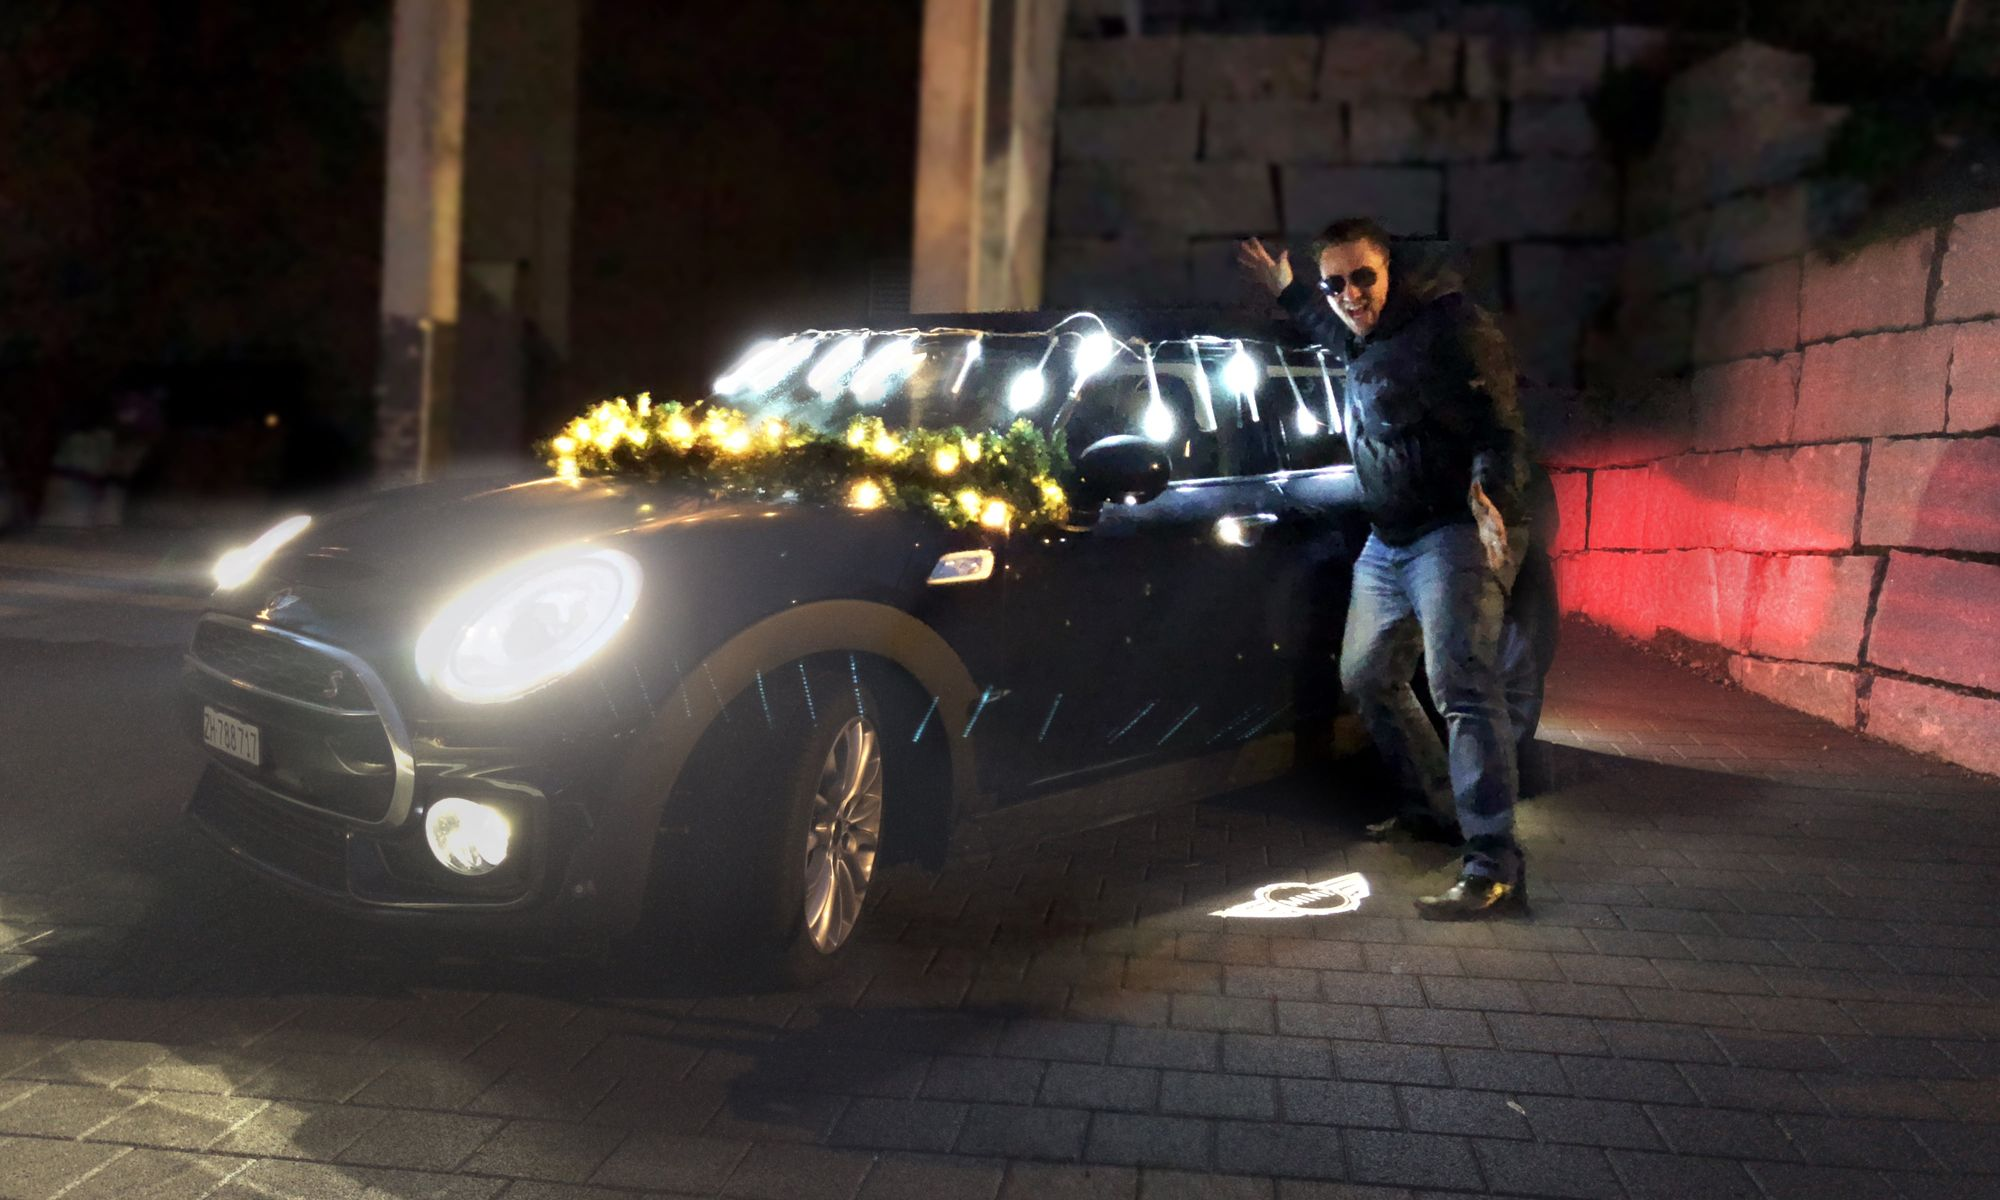 Christmas Lights on a MINI Clubman, by Renato Mitra